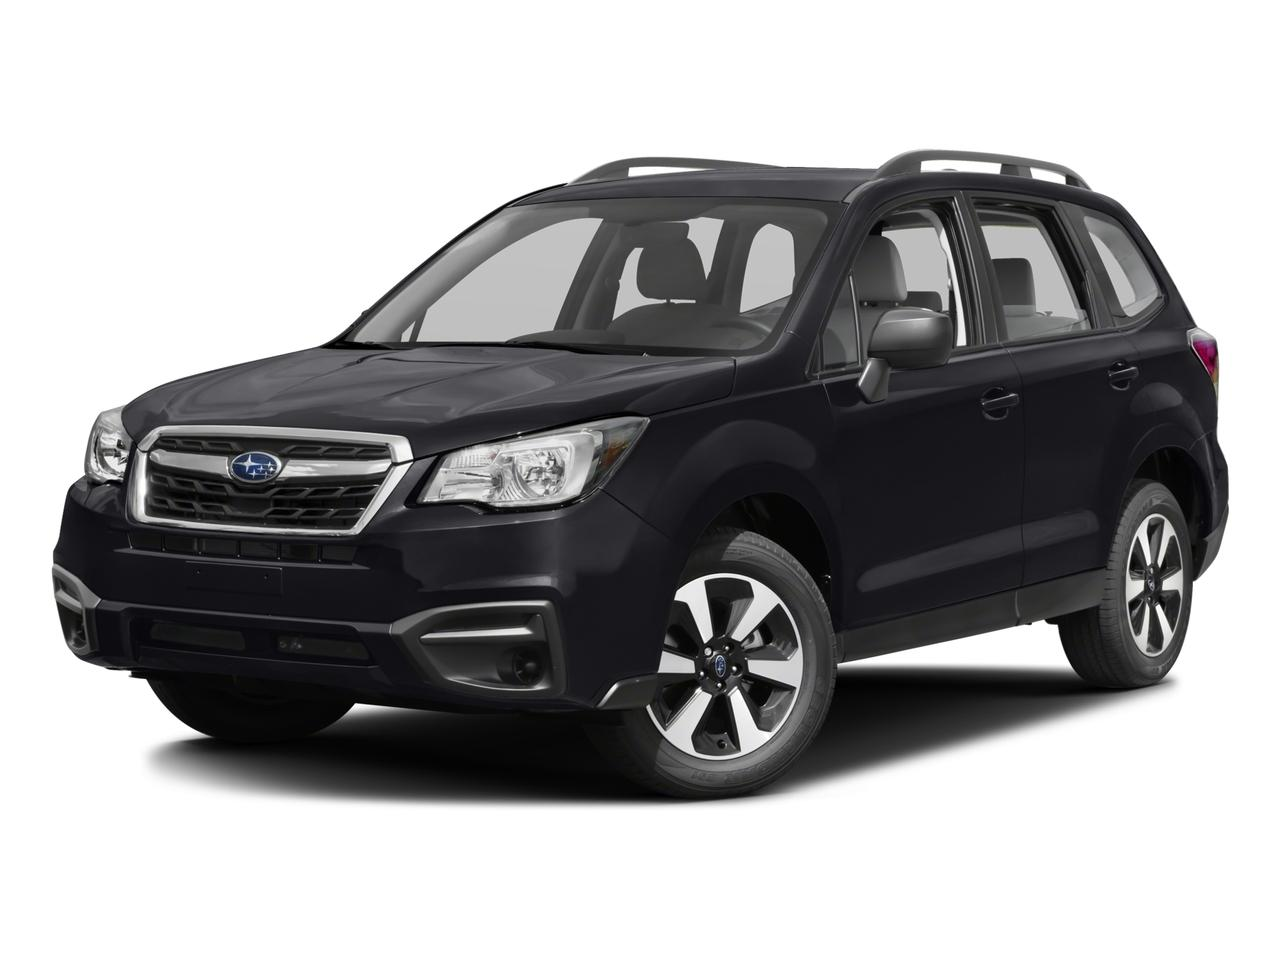 2017 Subaru Forester Vehicle Photo in Allentown, PA 18103